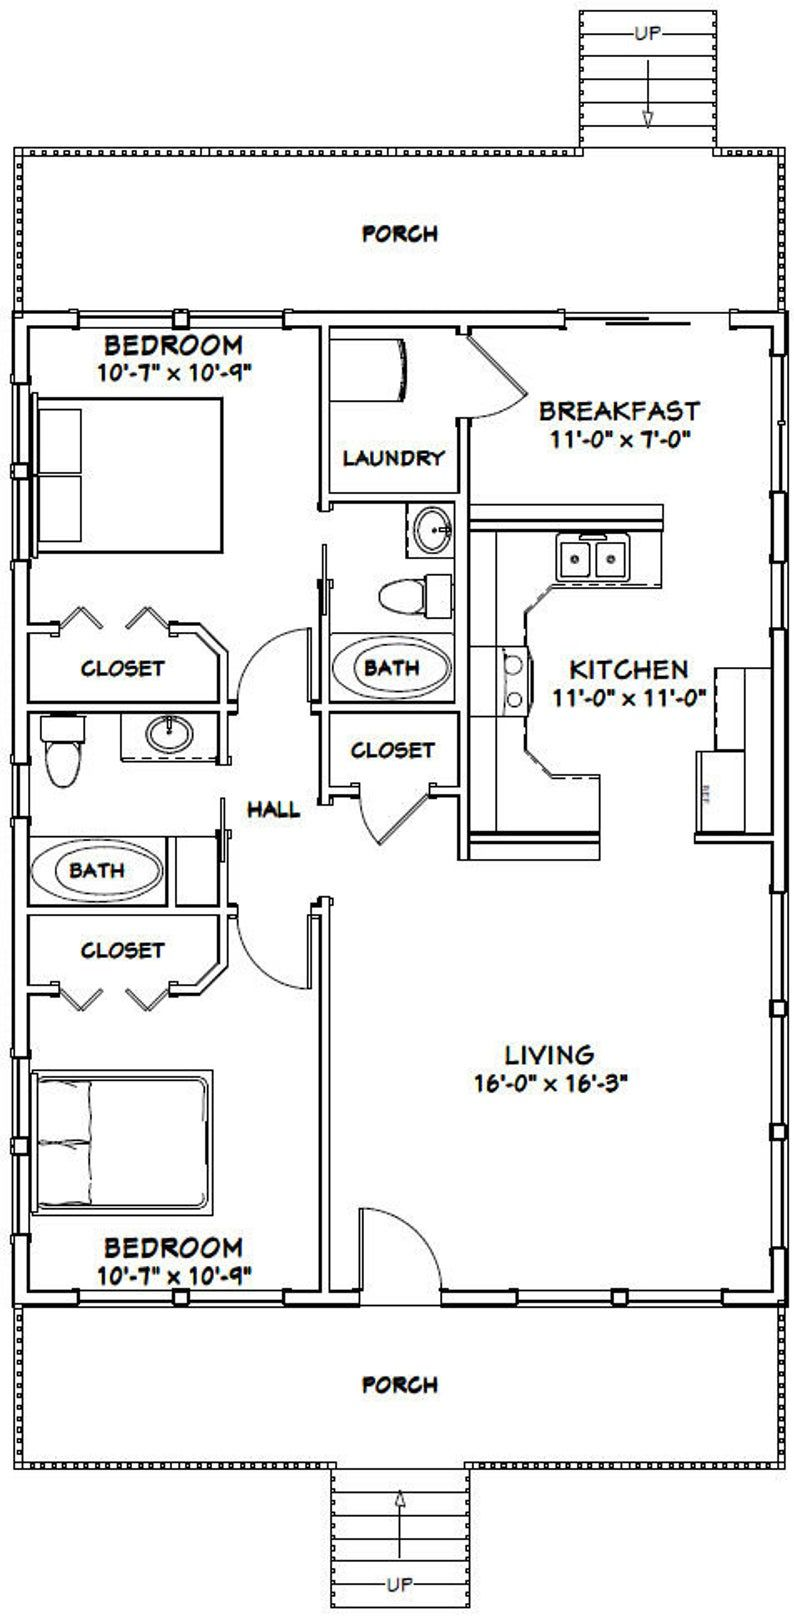 28x36 House 2 Bedroom 2 Bath 1 008 Sq Ft Pdf Floor Plan Instant Download Model 3e In 2021 Small House Floor Plans House Plans Ranch House Plans